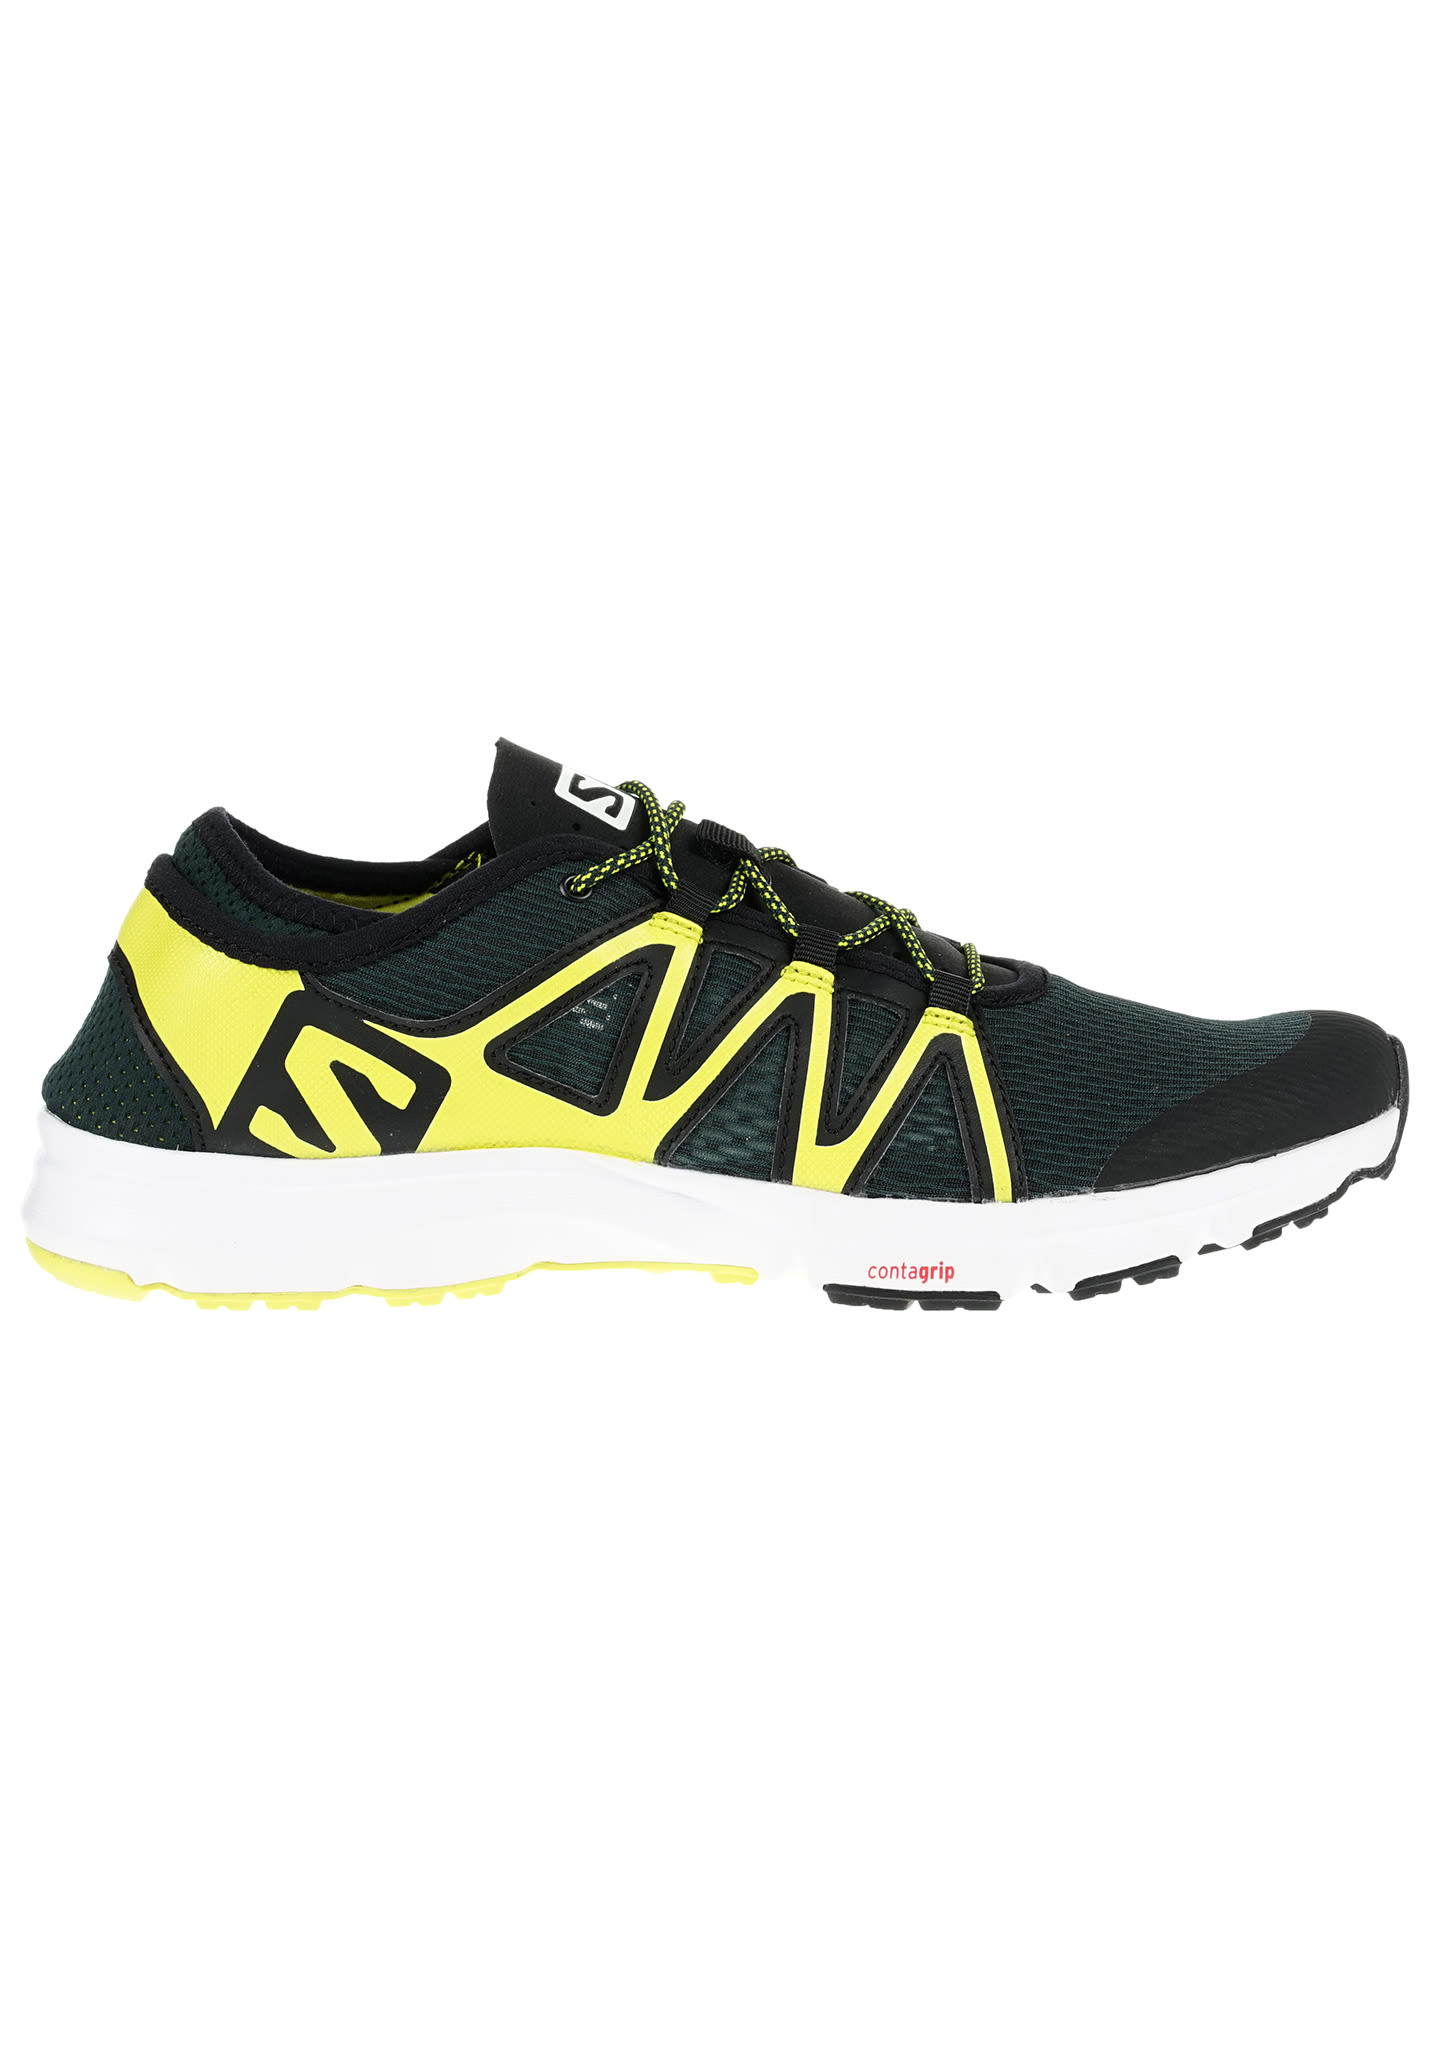 a302cca34a01 Salomon Crossamphibian Swift - Sneakers for Men - Green - Planet Sports